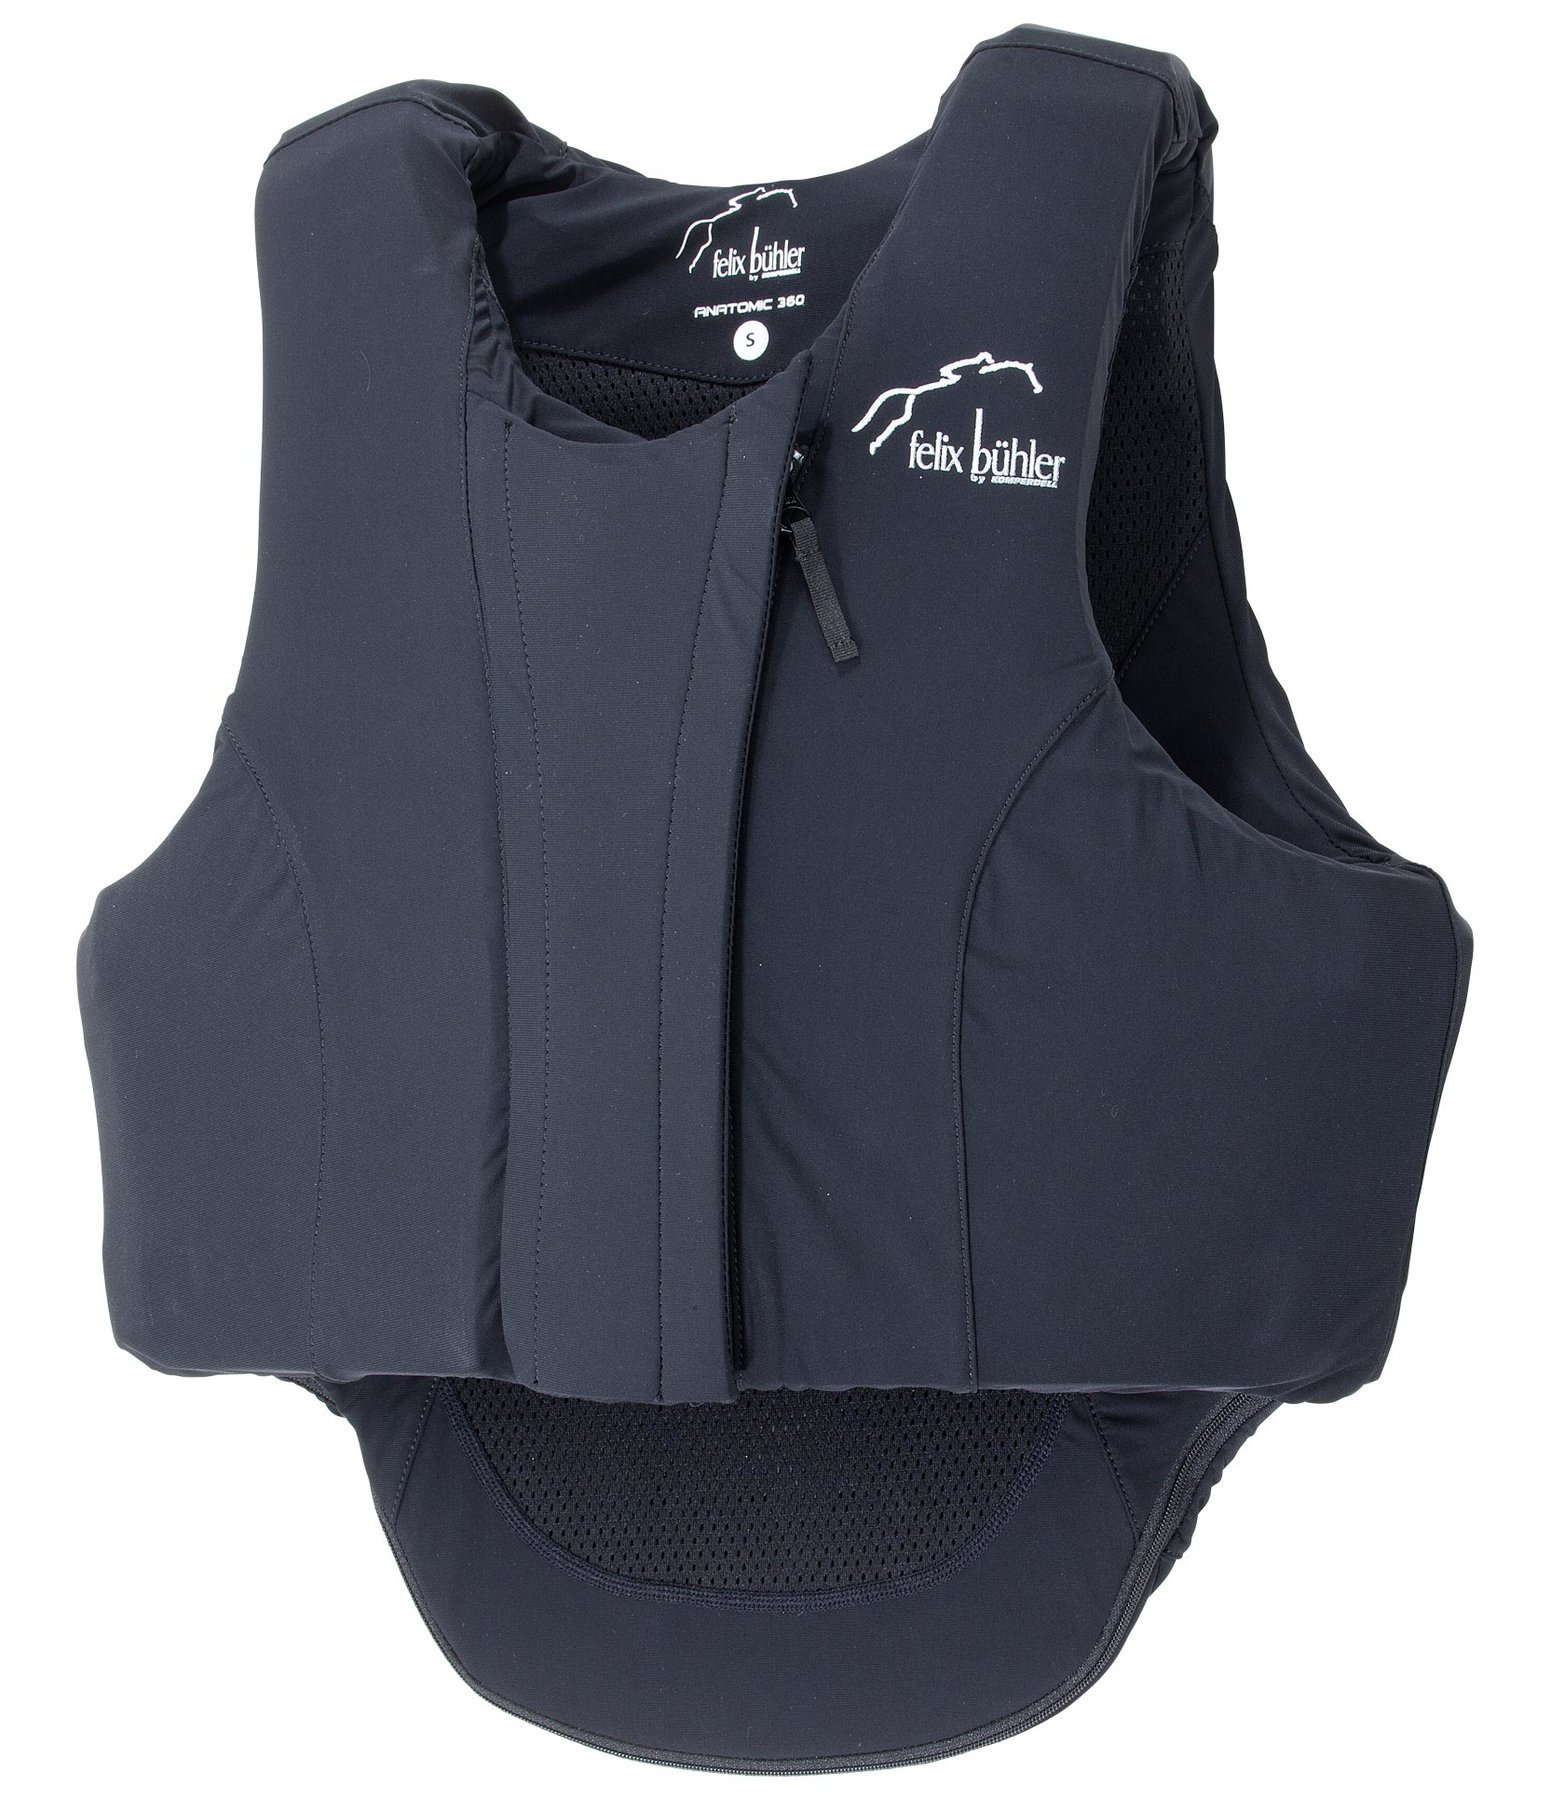 by KOMPERDELL Body Protector Anatomic 360 II